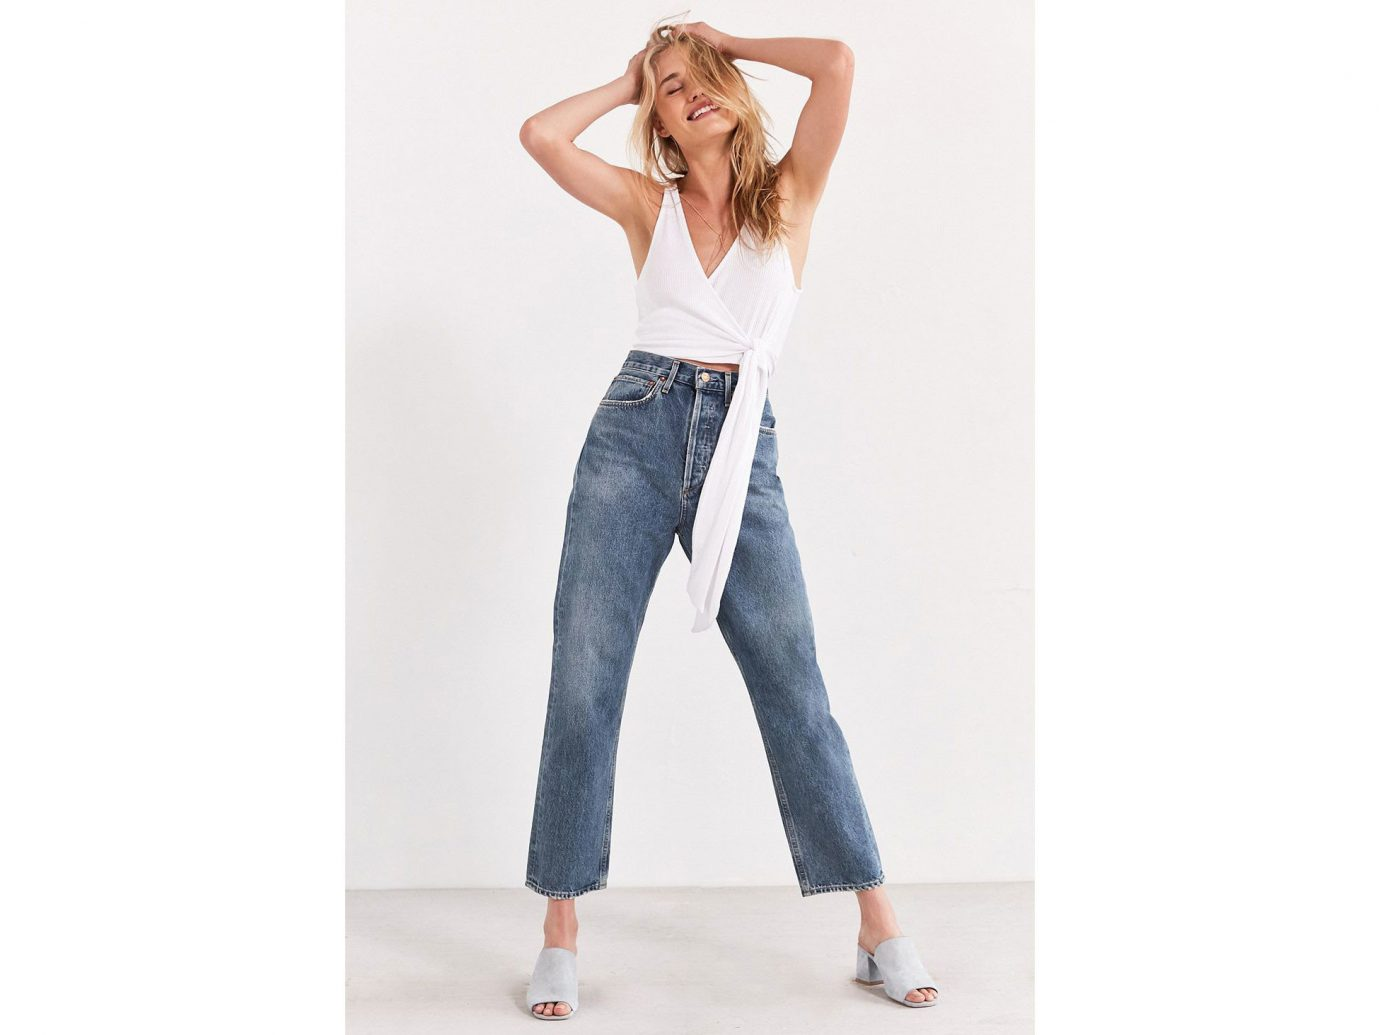 Travel Shop Travel Trends clothing woman person jeans denim fashion model waist lady shoulder trousers trouser trunk joint abdomen posing one piece garment neck supermodel beautiful pretty